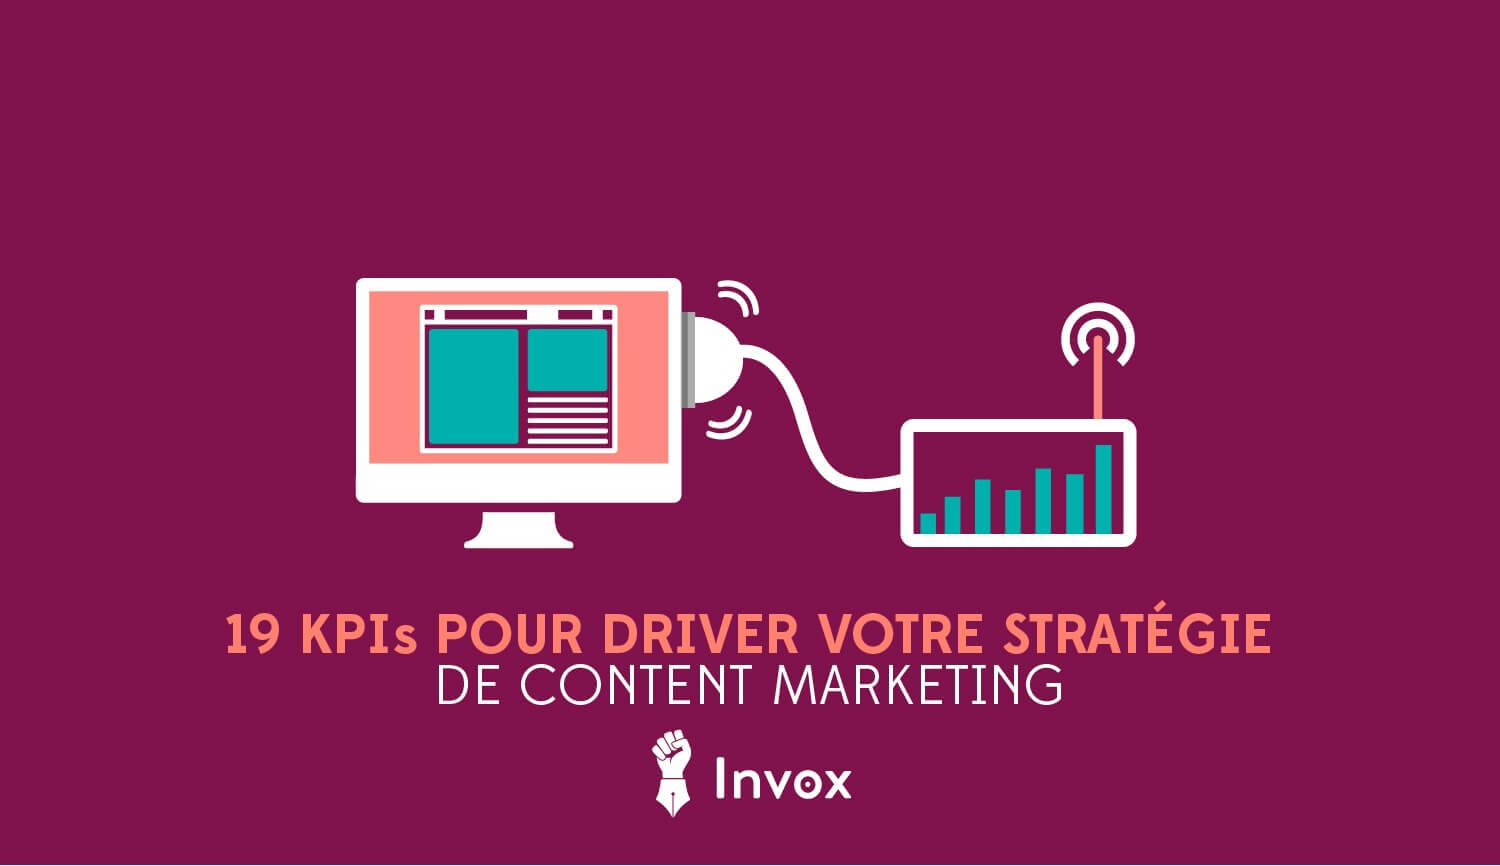 19-kpis-pour-driver-votre-strat__gie-de-content-_marketing-invox-blog1-04